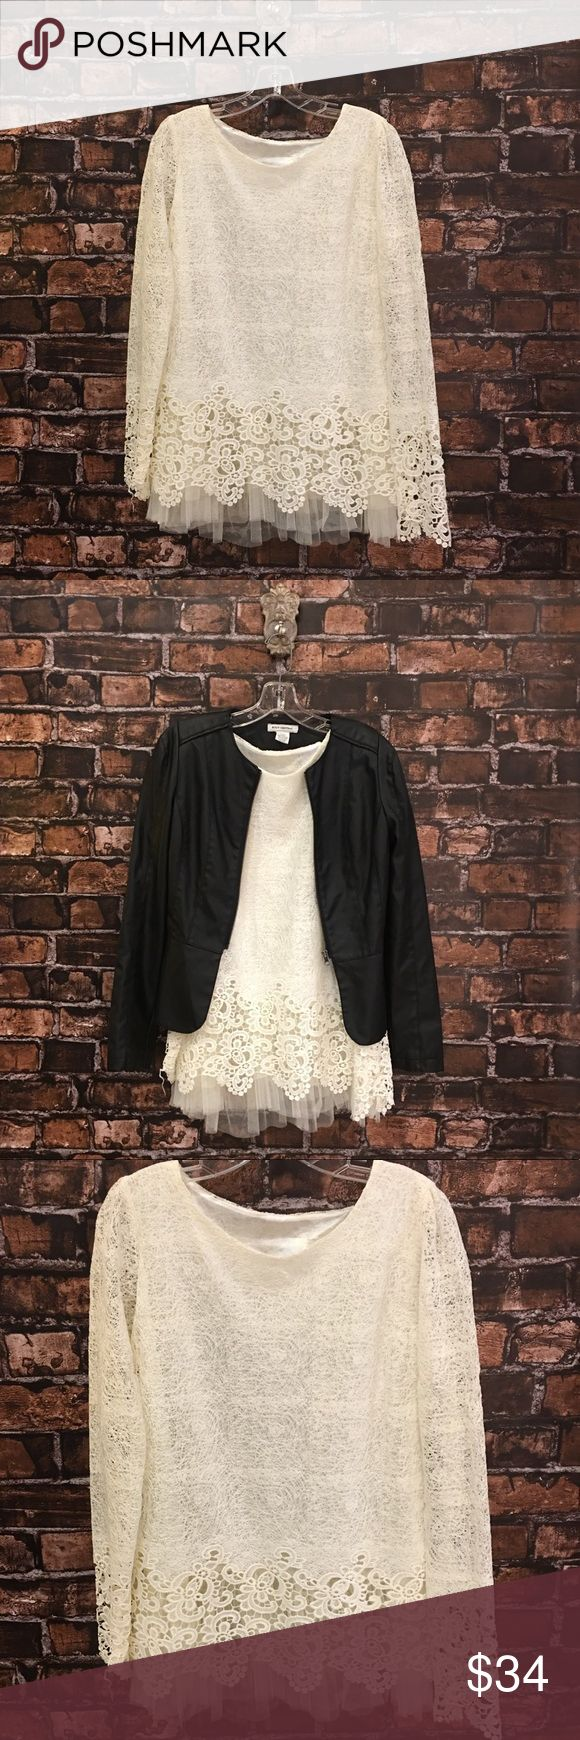 Women XL Fu Phi Liyan off white lace/tulle Blouse LOVE LOVE LOVE!! This top is the perfect amount of cute and sassy!! Off White lace and tulle. Long sleeve. Round neck! The detail is breath taking! Definitely a MUST HAVE!! We paired this fun adorable top with a leather jacket!! This makes a perfect blend of cute and sweet and edgy!! Get this look from our closet!! **ONE pull in the blouse! It is pictured but very hard to see! See last picture!! (WT301) 😍✨ Tops Blouses